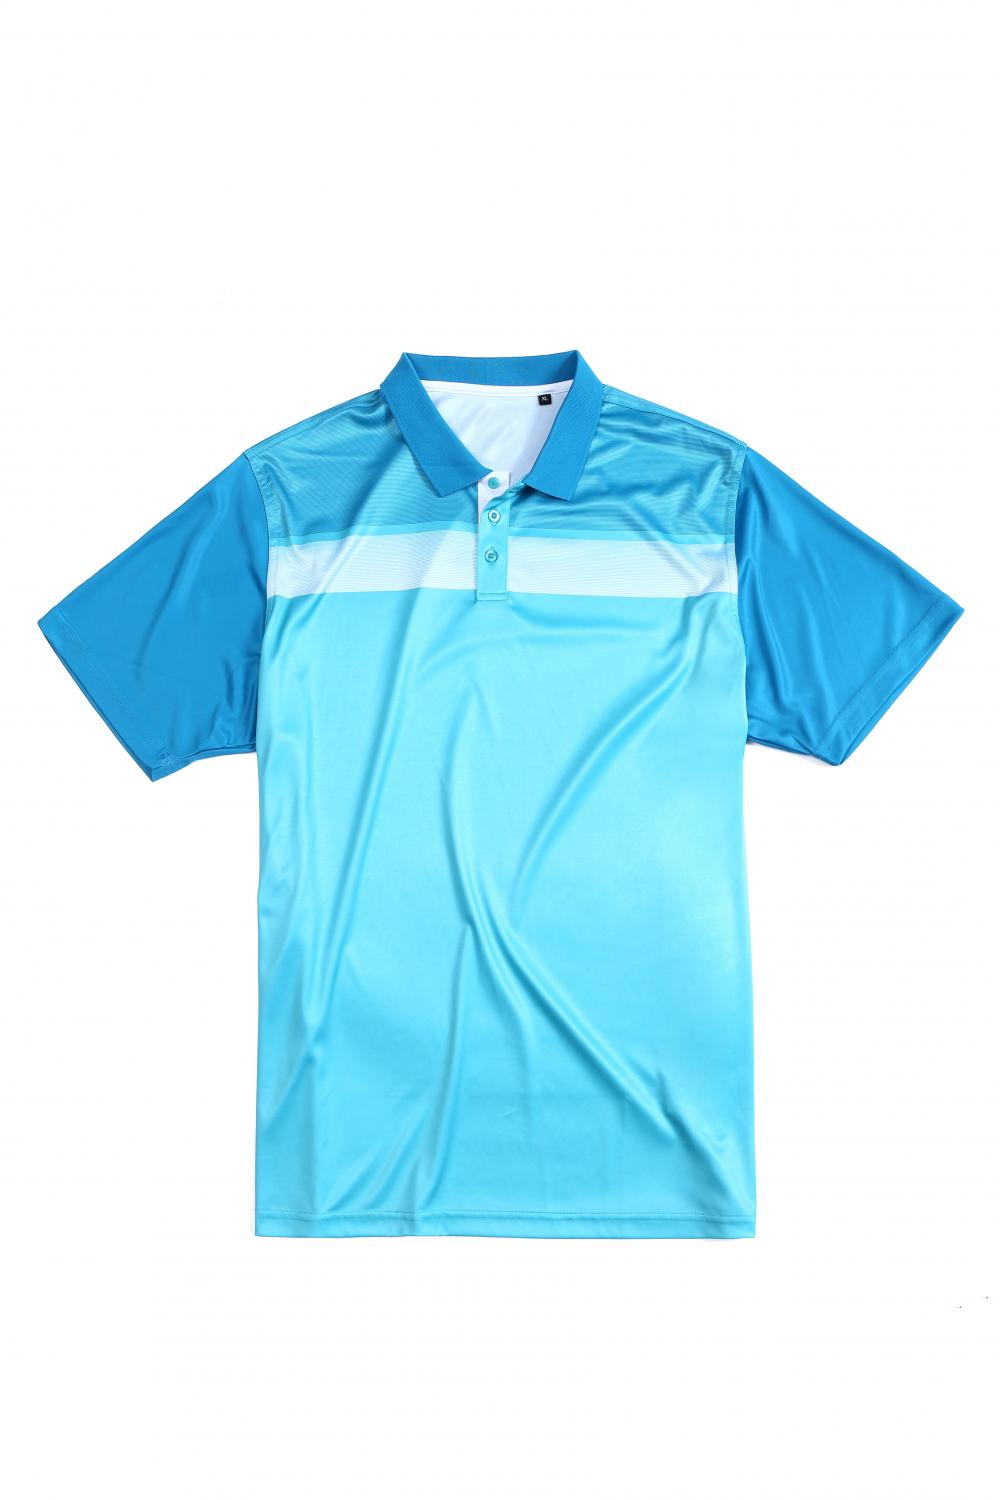 Men's digital printing golfer